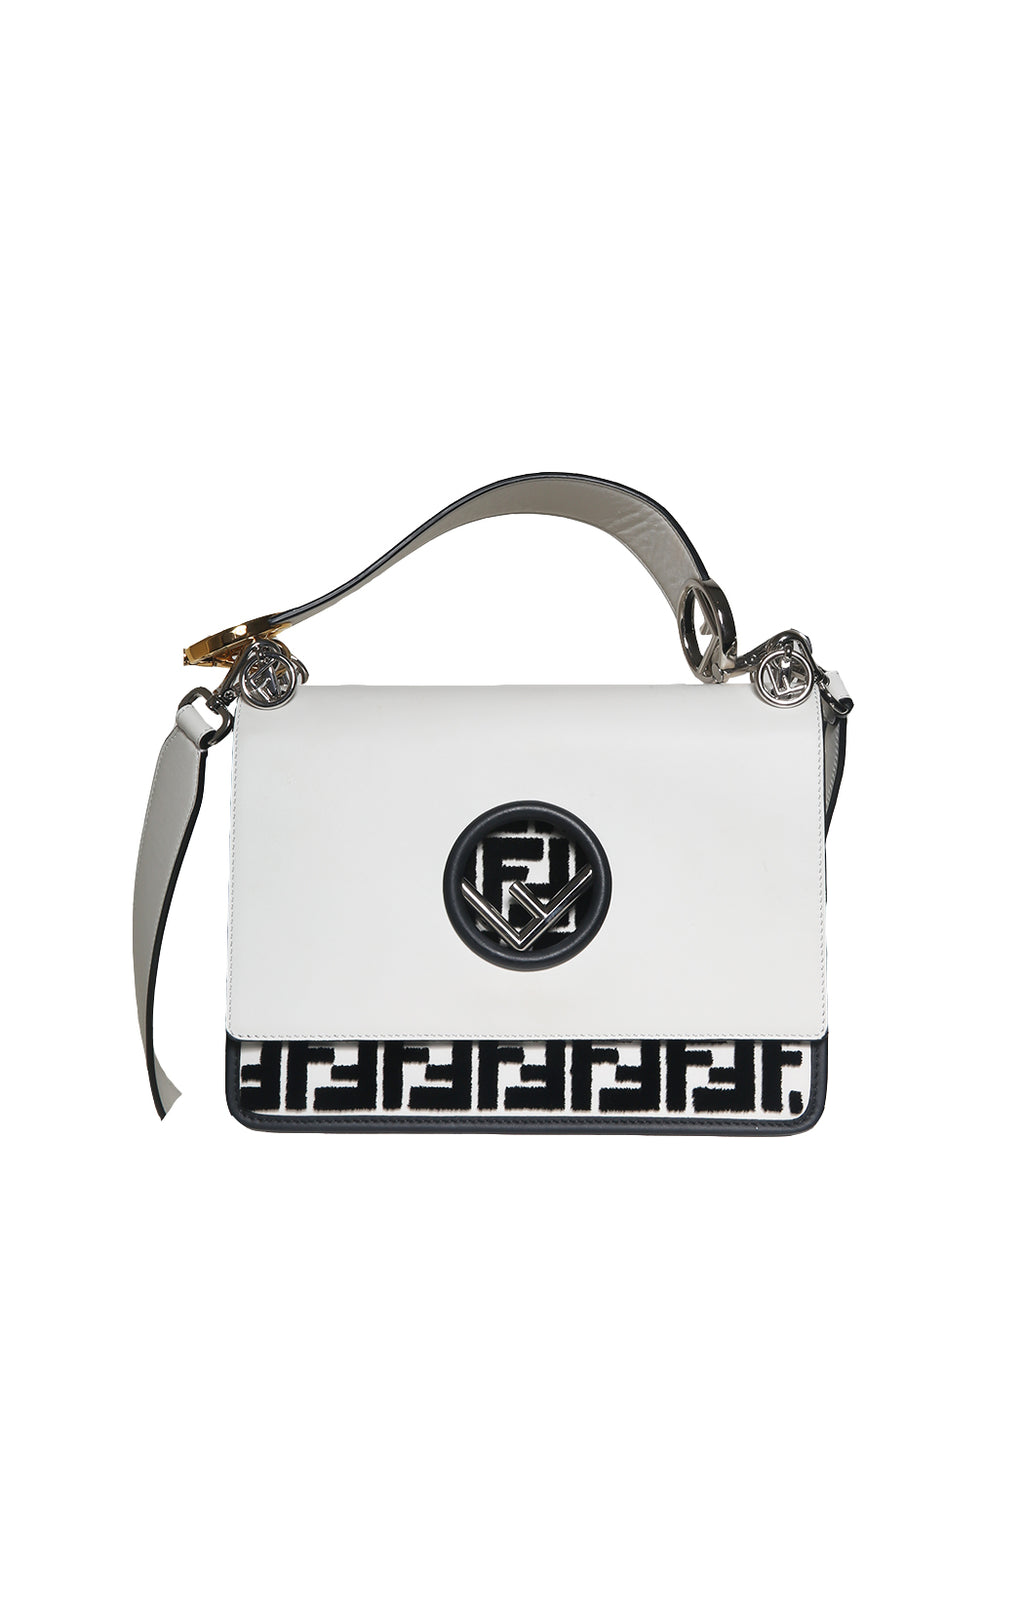 Front view of FENDI  Logo Handbag Size: 10 in. x 7 in. x 4 in.